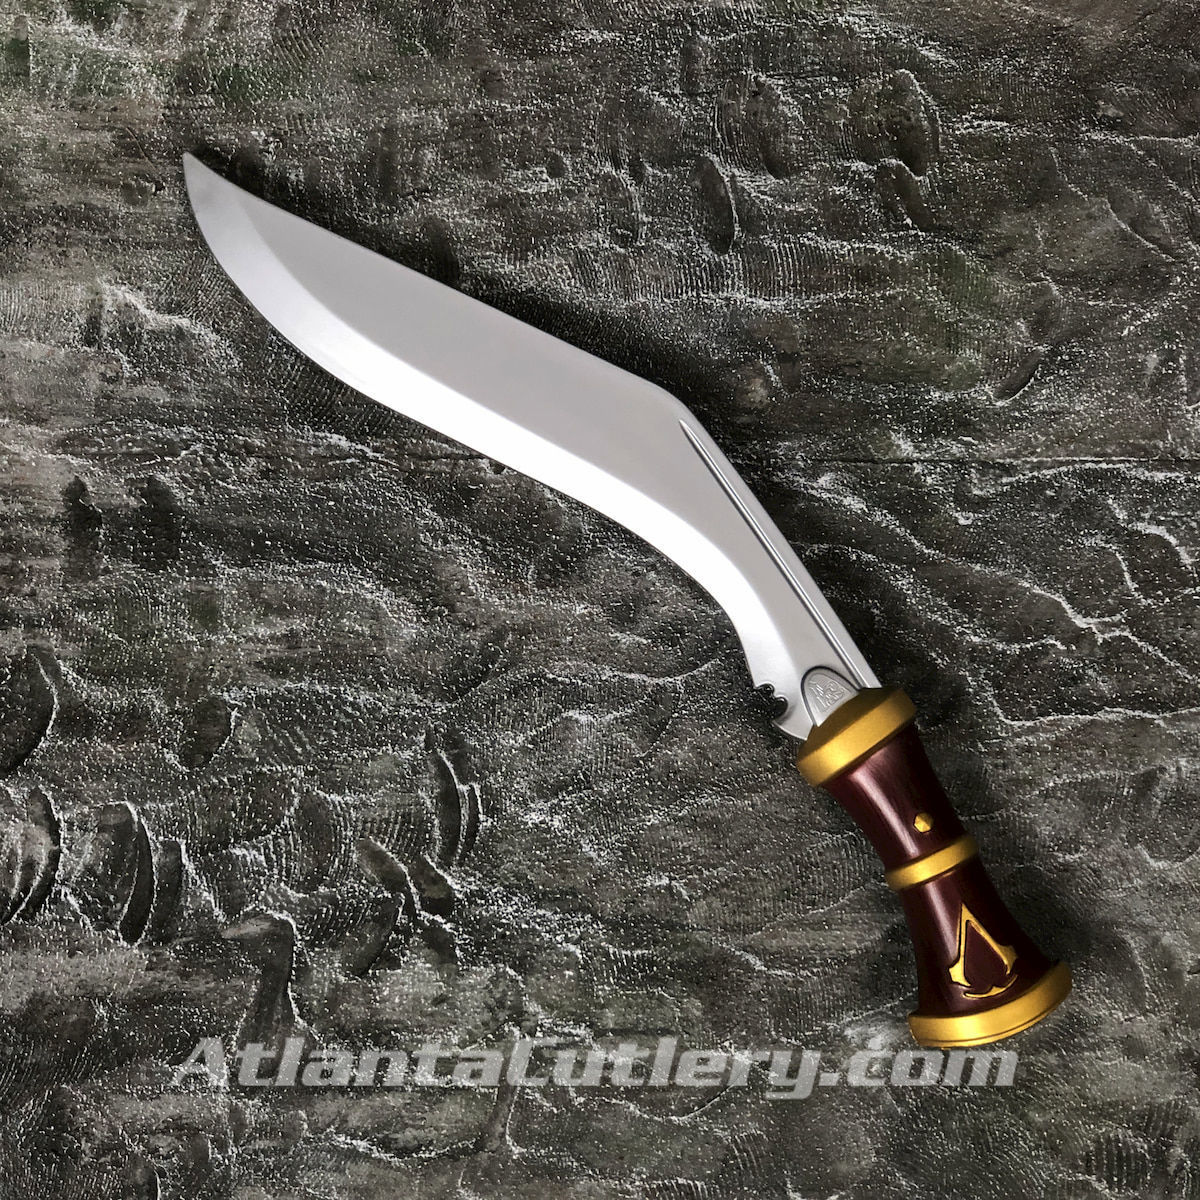 Officially licensed Assassin's Creed kukri looks real, but is made from dense latex foam